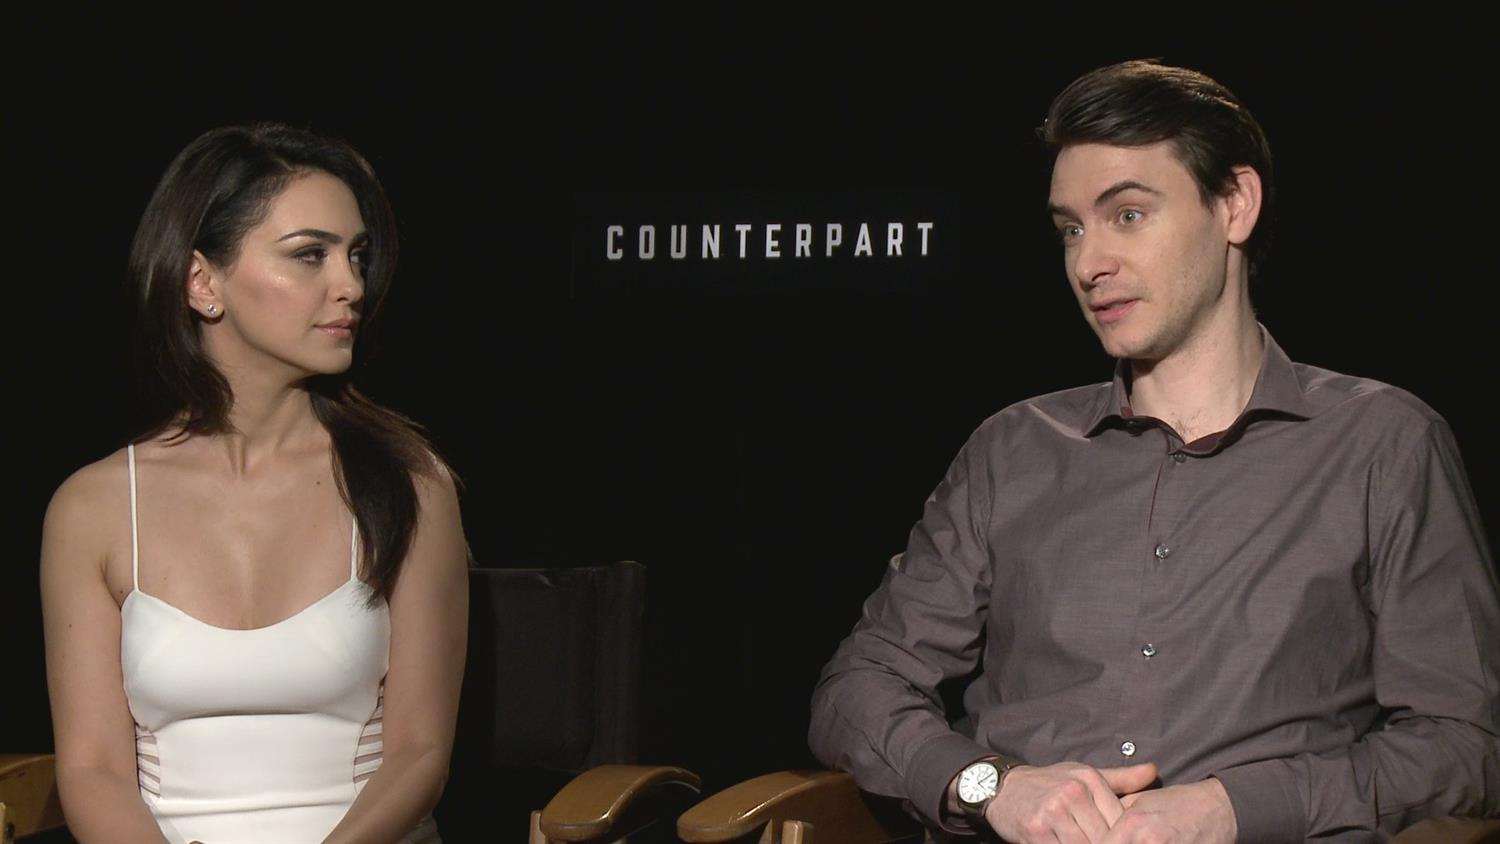 Counterpart Actors On Working With Parallel Dimensions